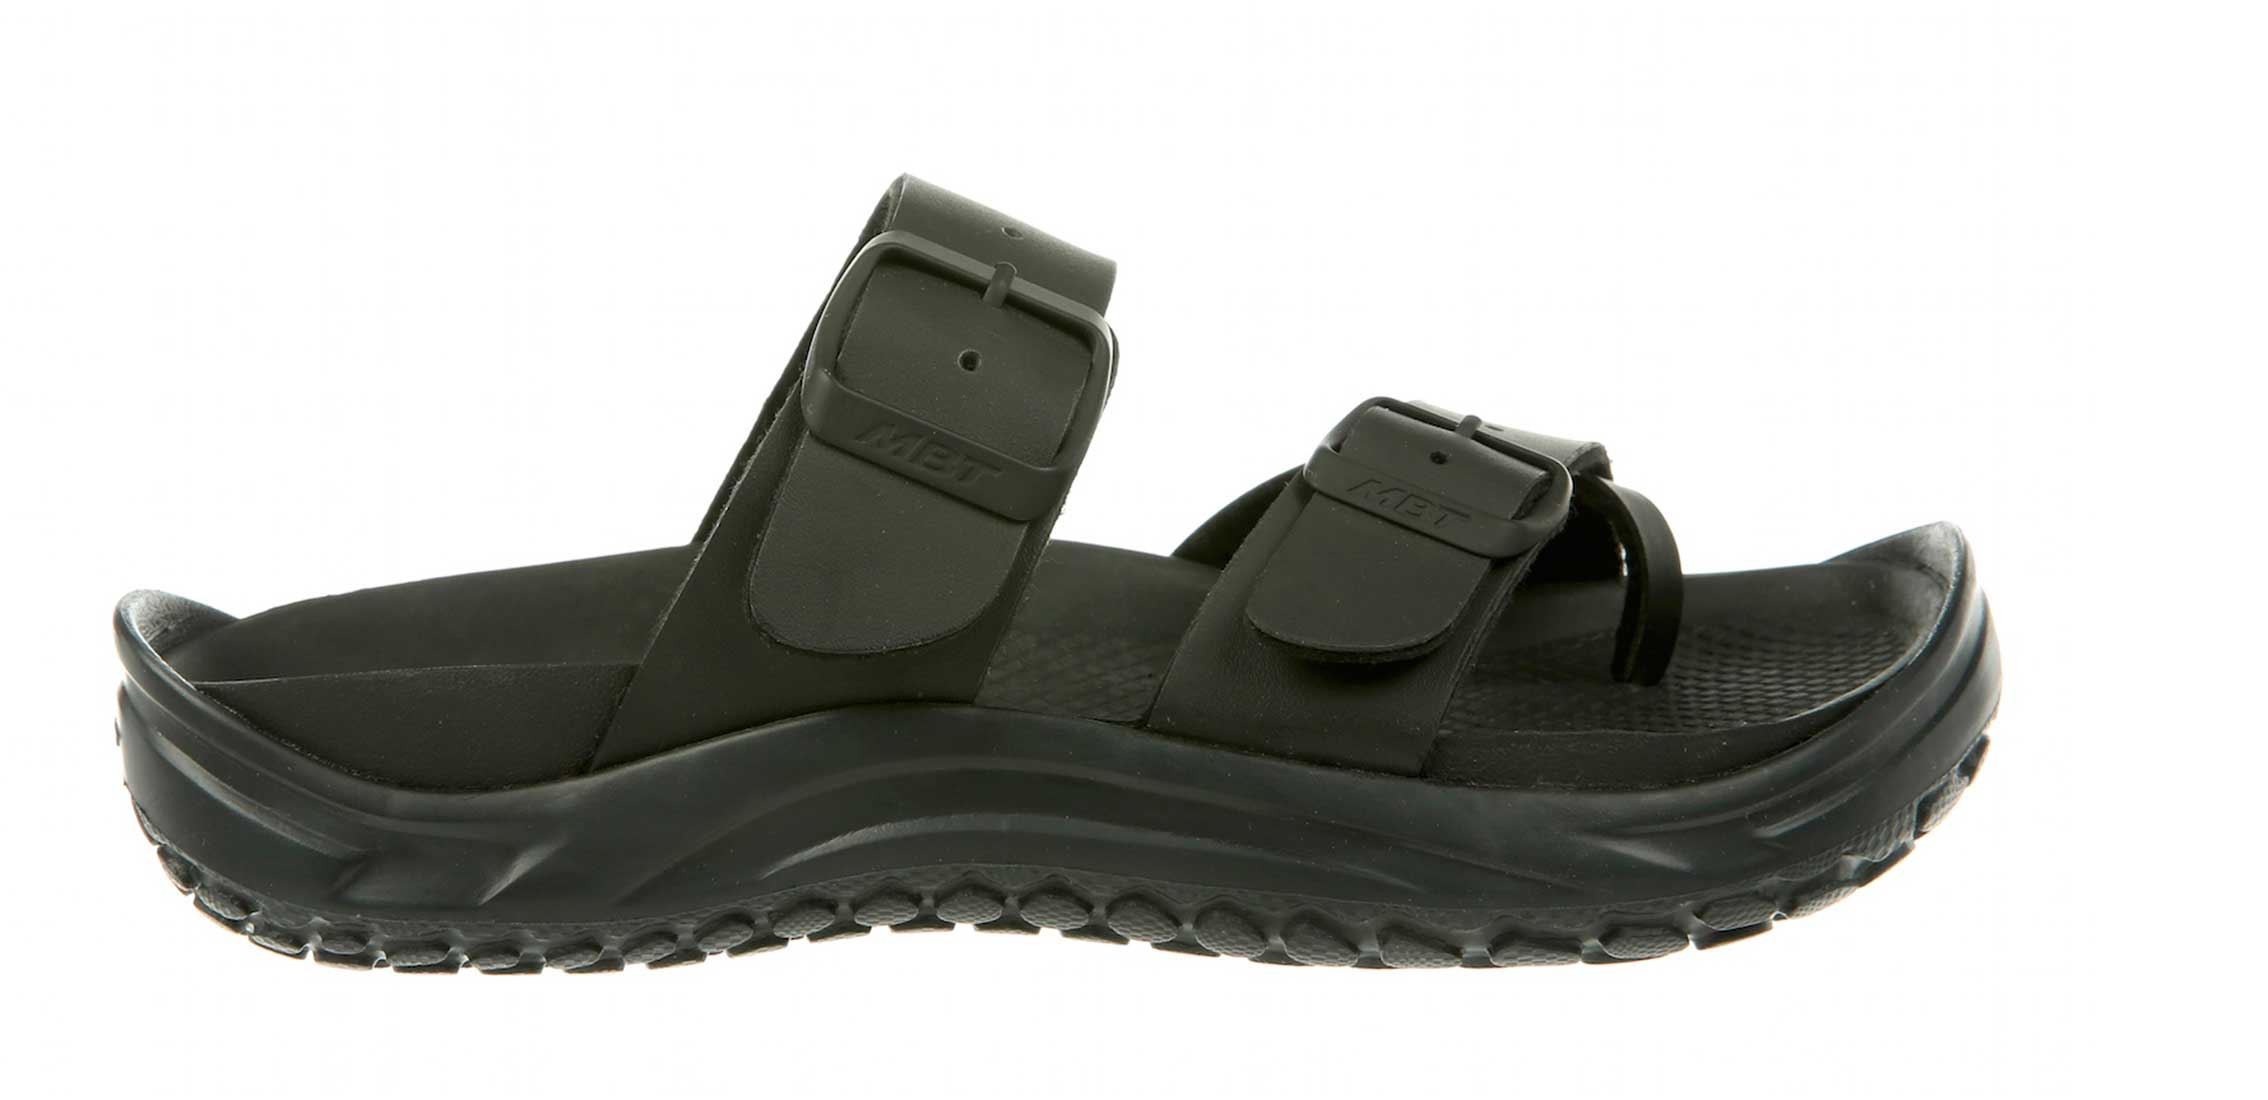 MBT Shoes Men's Nakuru Recovery Sandal